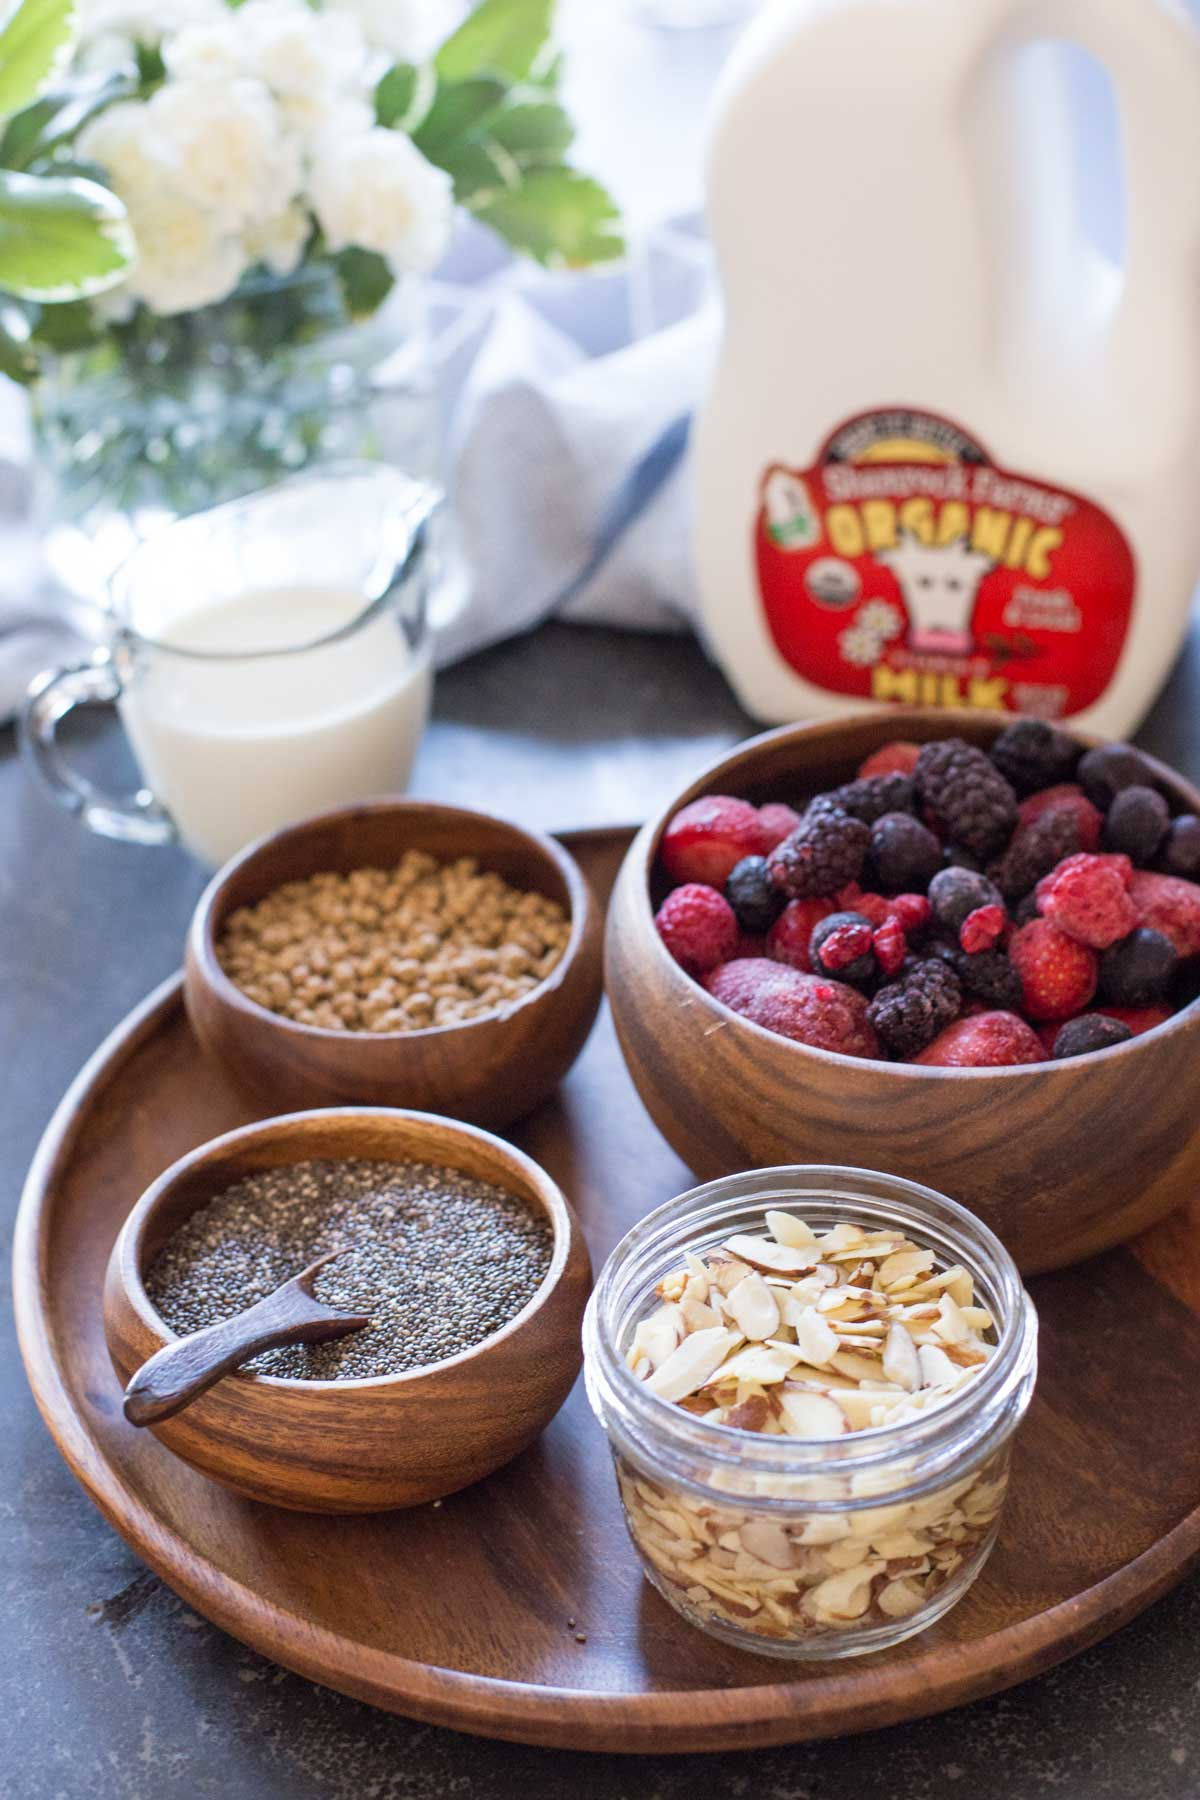 All the ingredients for the Chia Pudding Parfaits - A wood plate with a small wood bowl of bran nuggets, a small wood bowl of chia seeds, a small glass dish of sliced almonds, and a wood bowl of frozen mixed berries, sitting next to a milk jug and a small pour cup of milk.